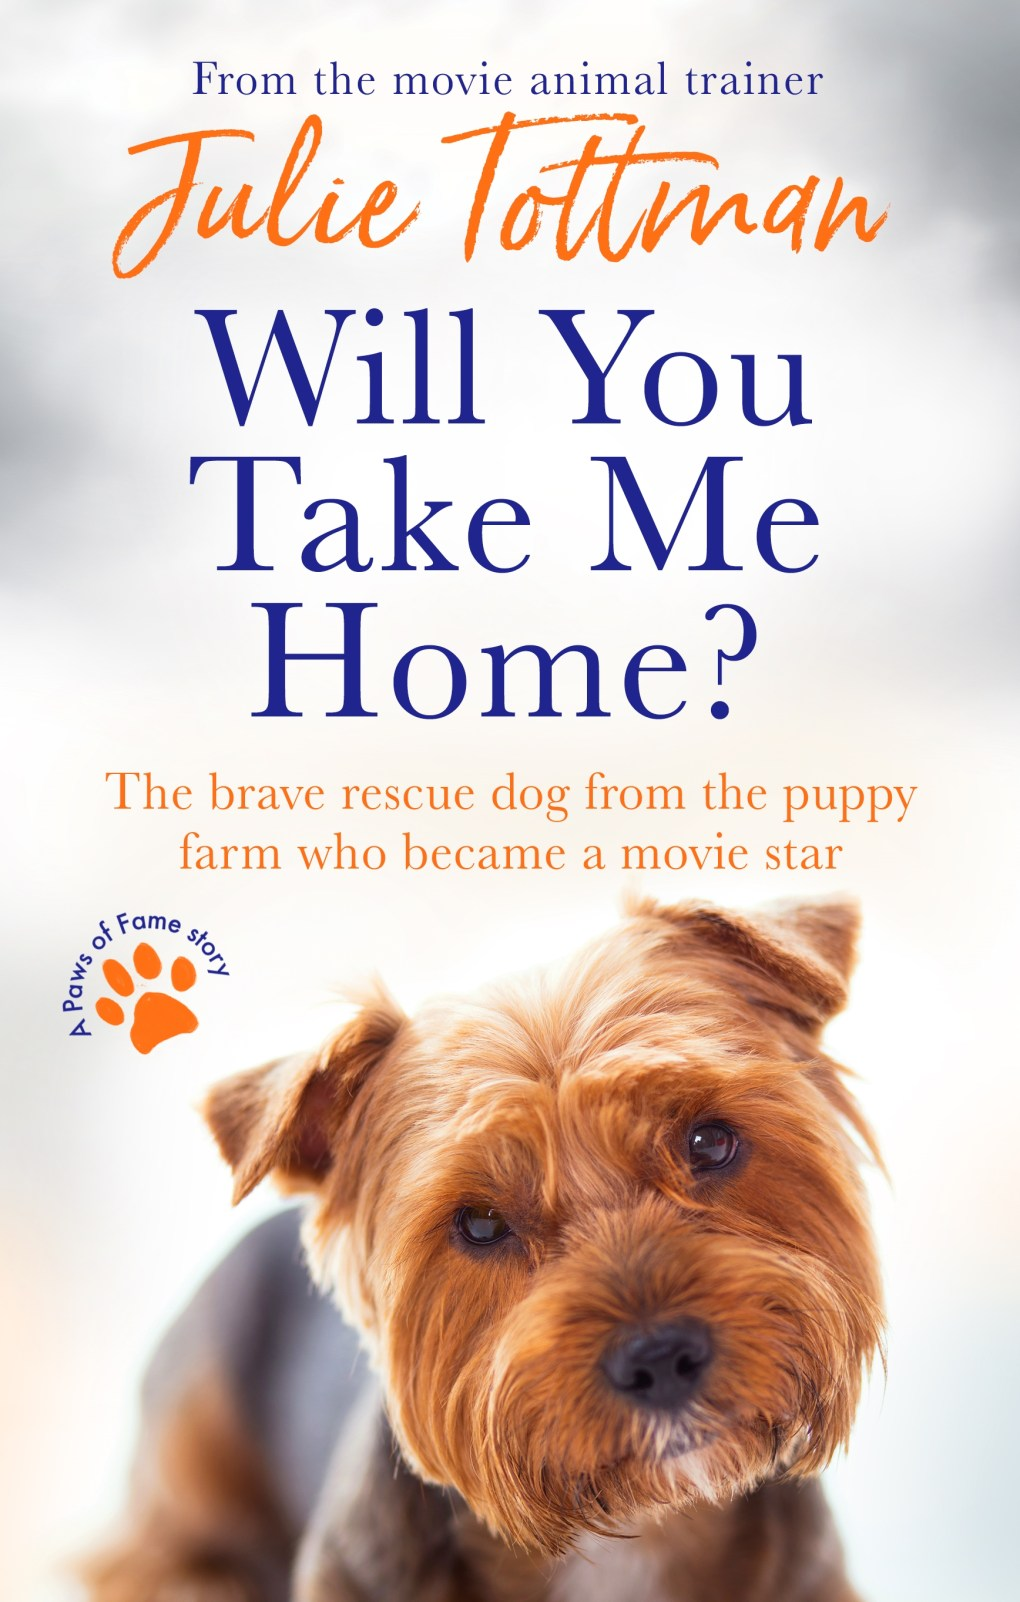 'Are you going to take me home?'  by Julie Tottman is out now for £ 7.99